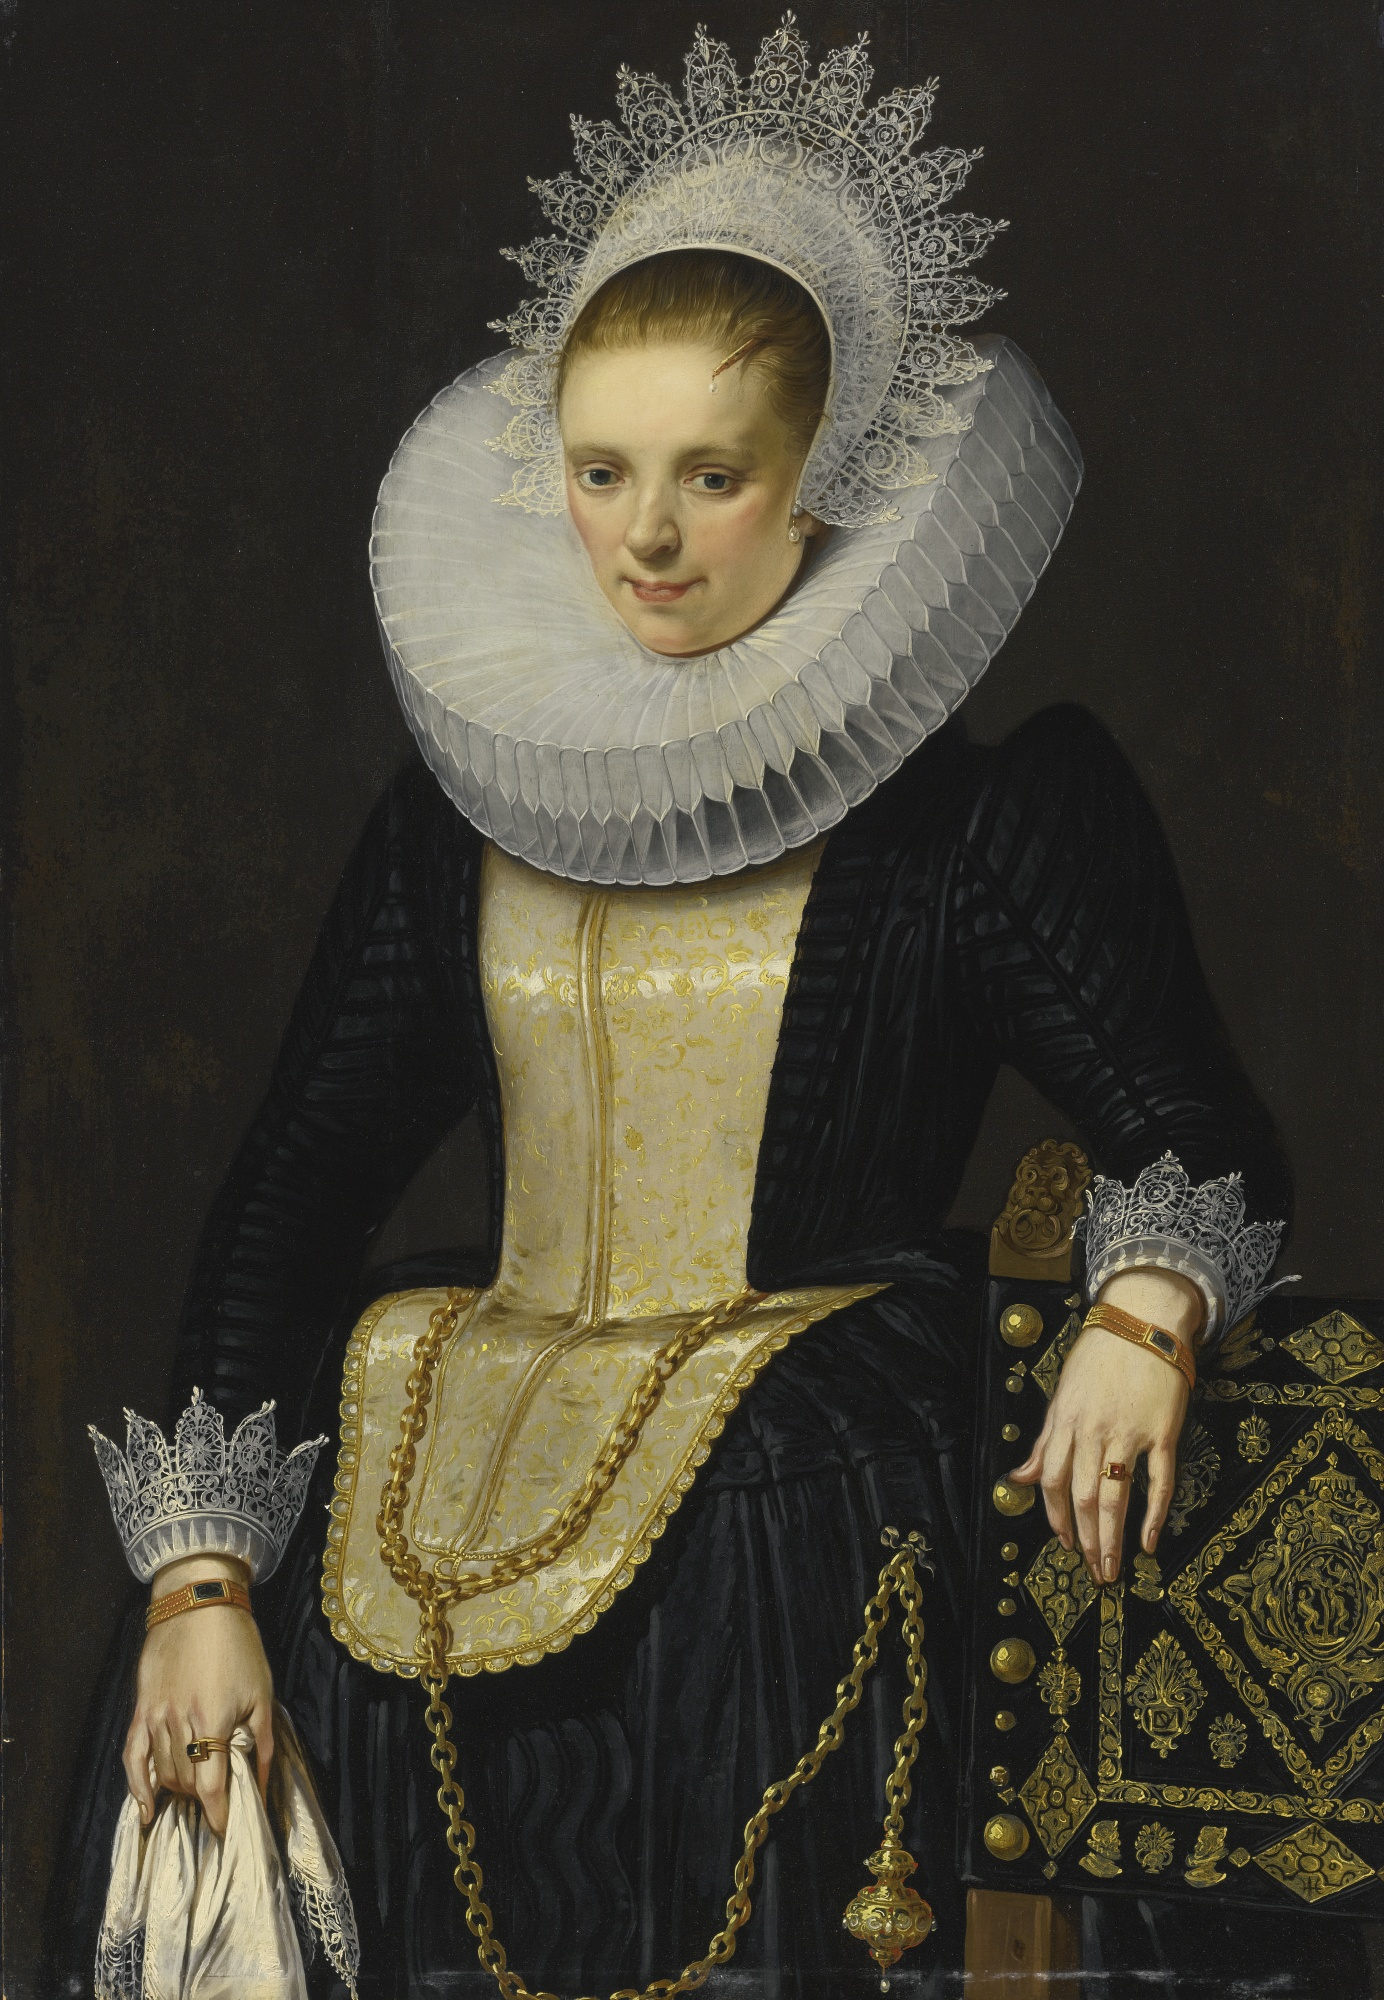 cornelis_de_vos_hulst_circa_1584_1651_antwerp_portrait_of_a_lady_in_elegant_dress.jpg